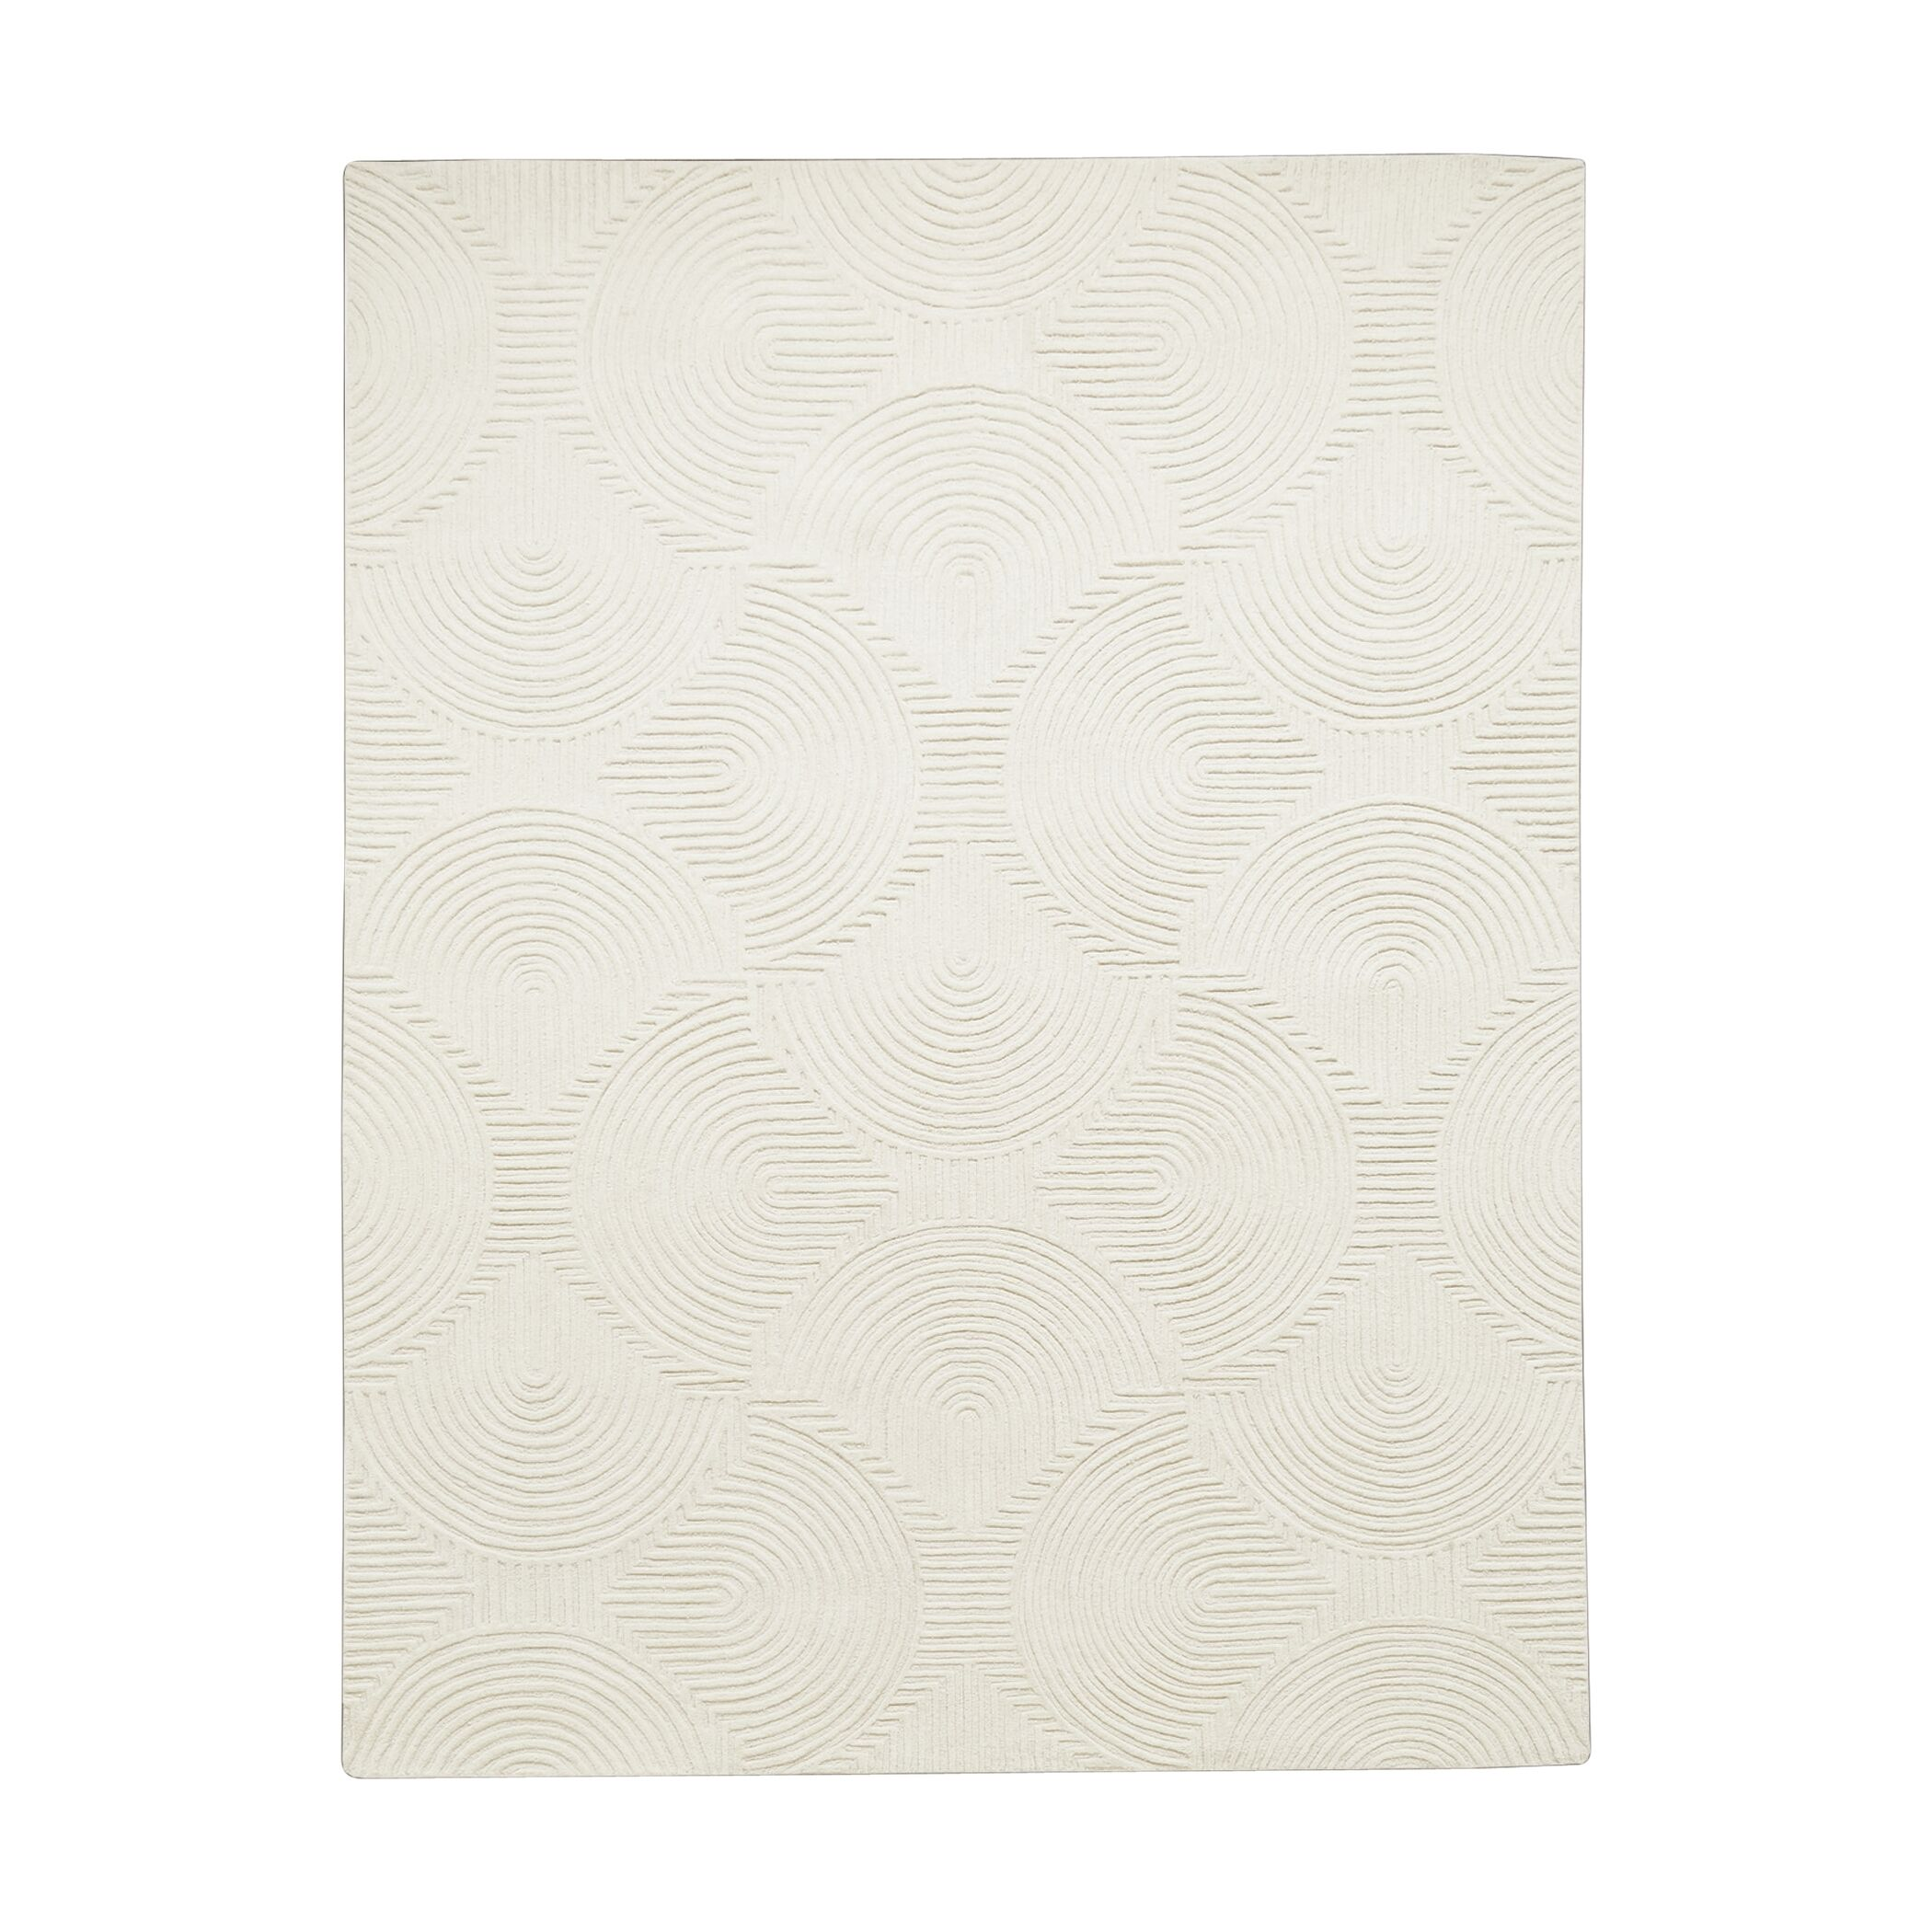 Arches Hand-Tufted Wool Ivory Area Rug Size: 8' x 10'